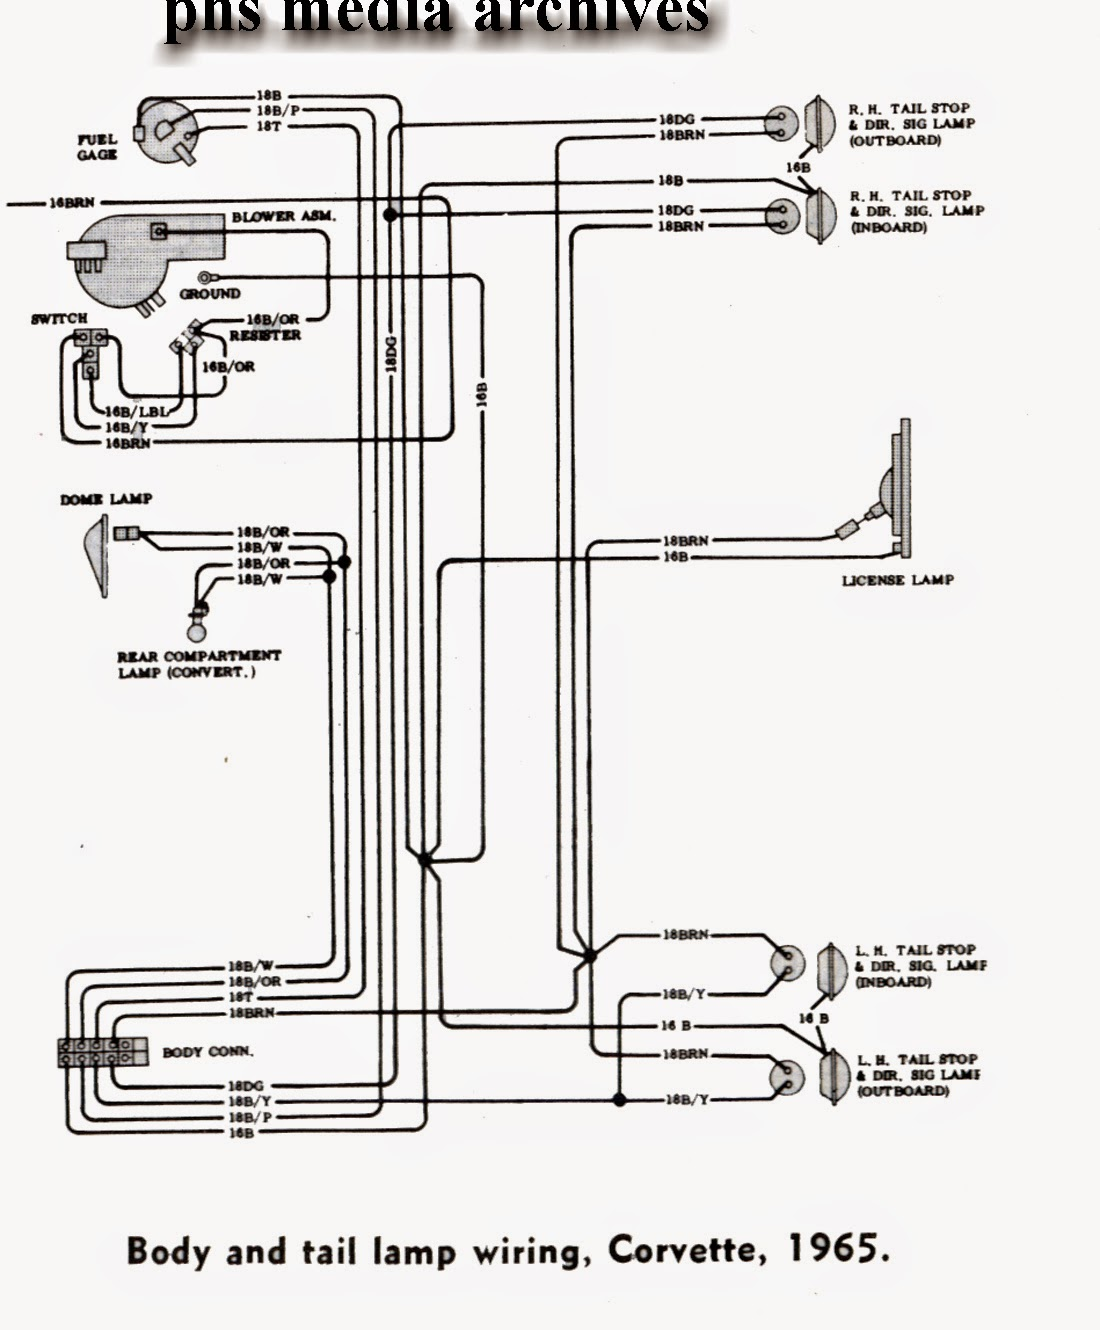 Corvette Wiring Schematics Full Electrical Wiring